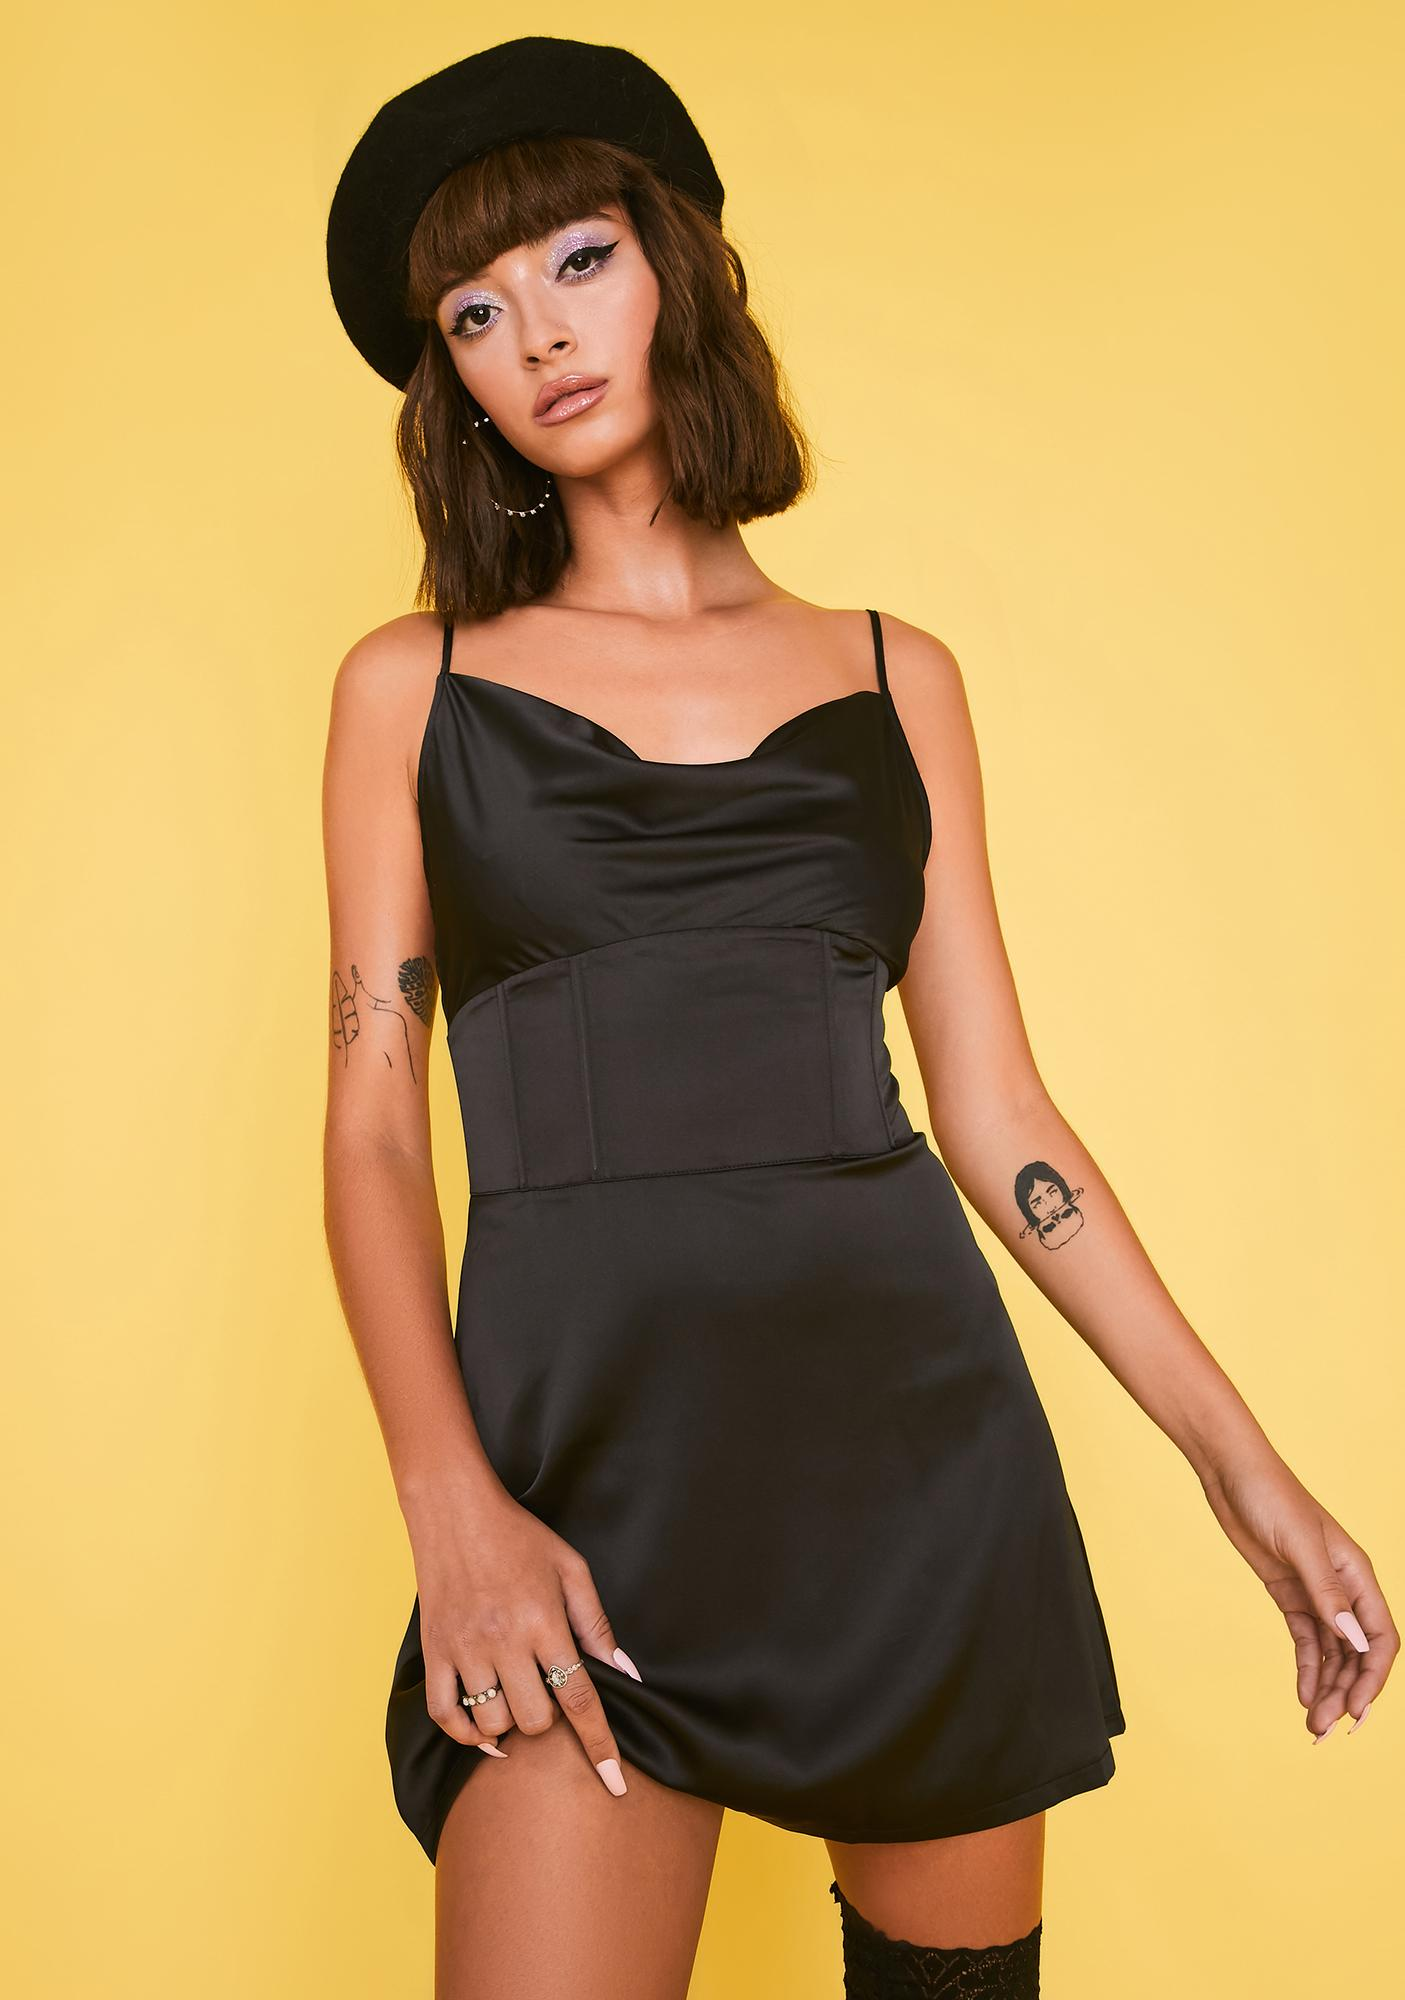 HOROSCOPEZ Anything But Basic Corset Dress